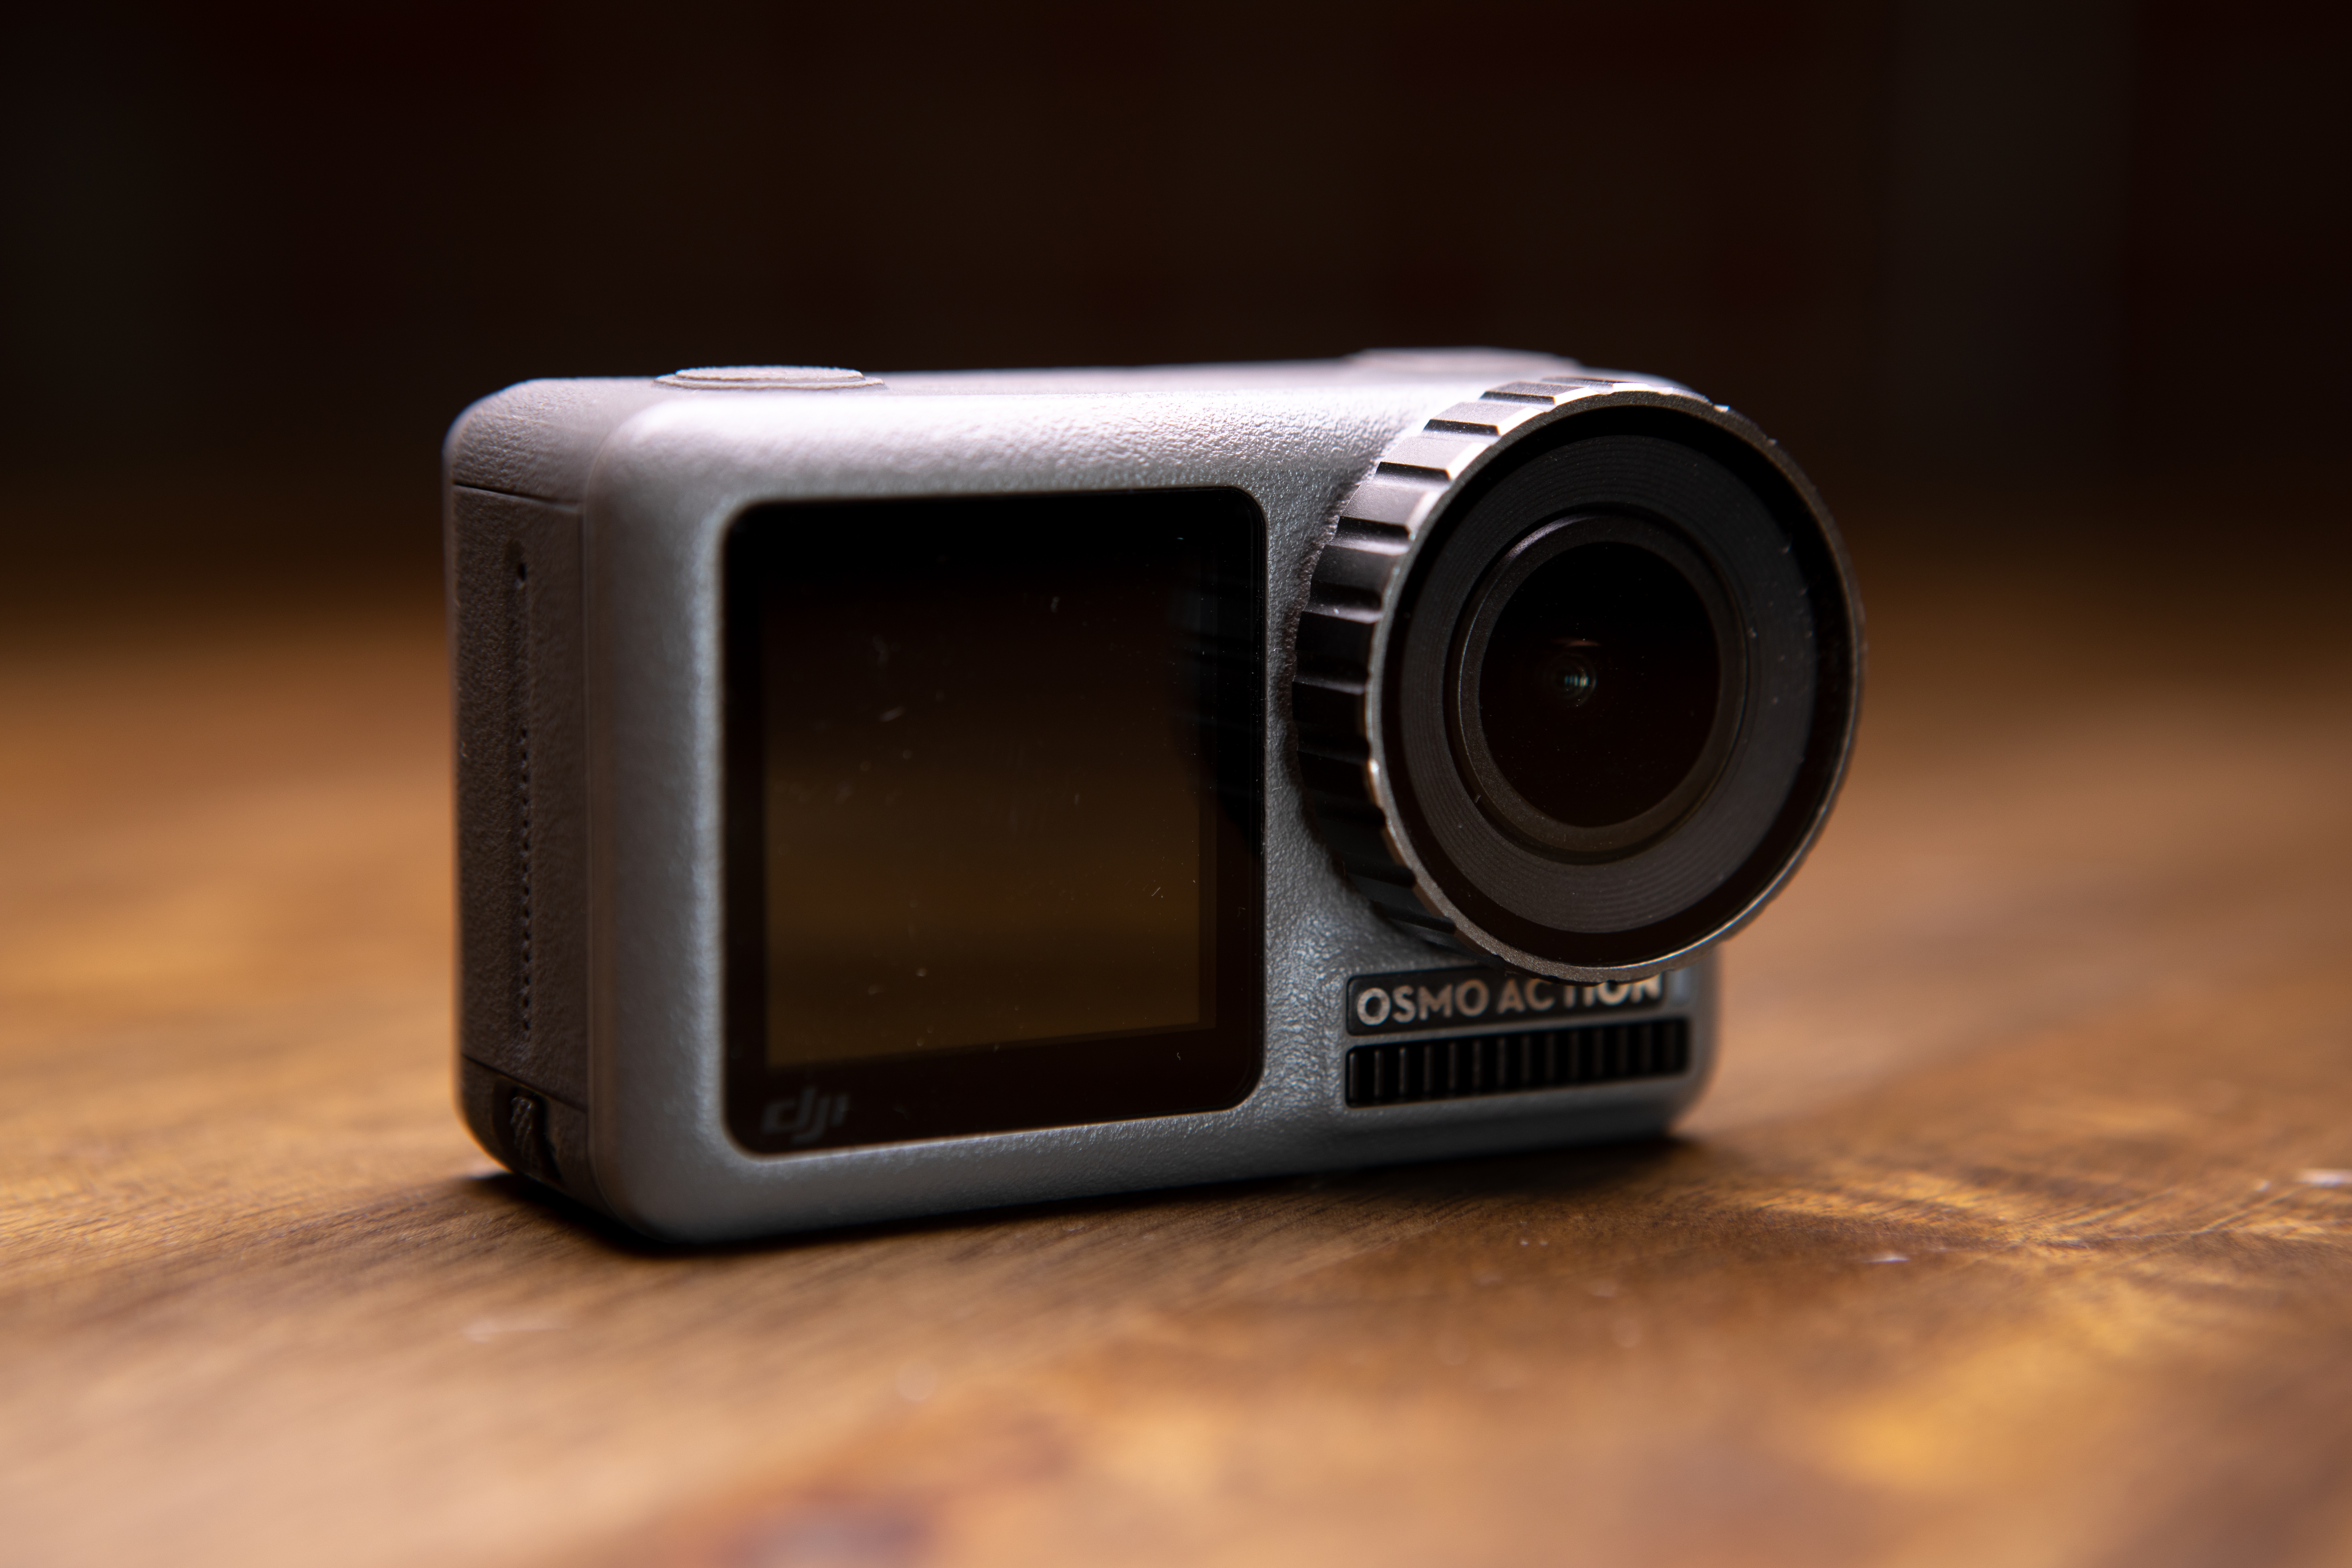 DJI is out-GoProing GoPro with its own action camera